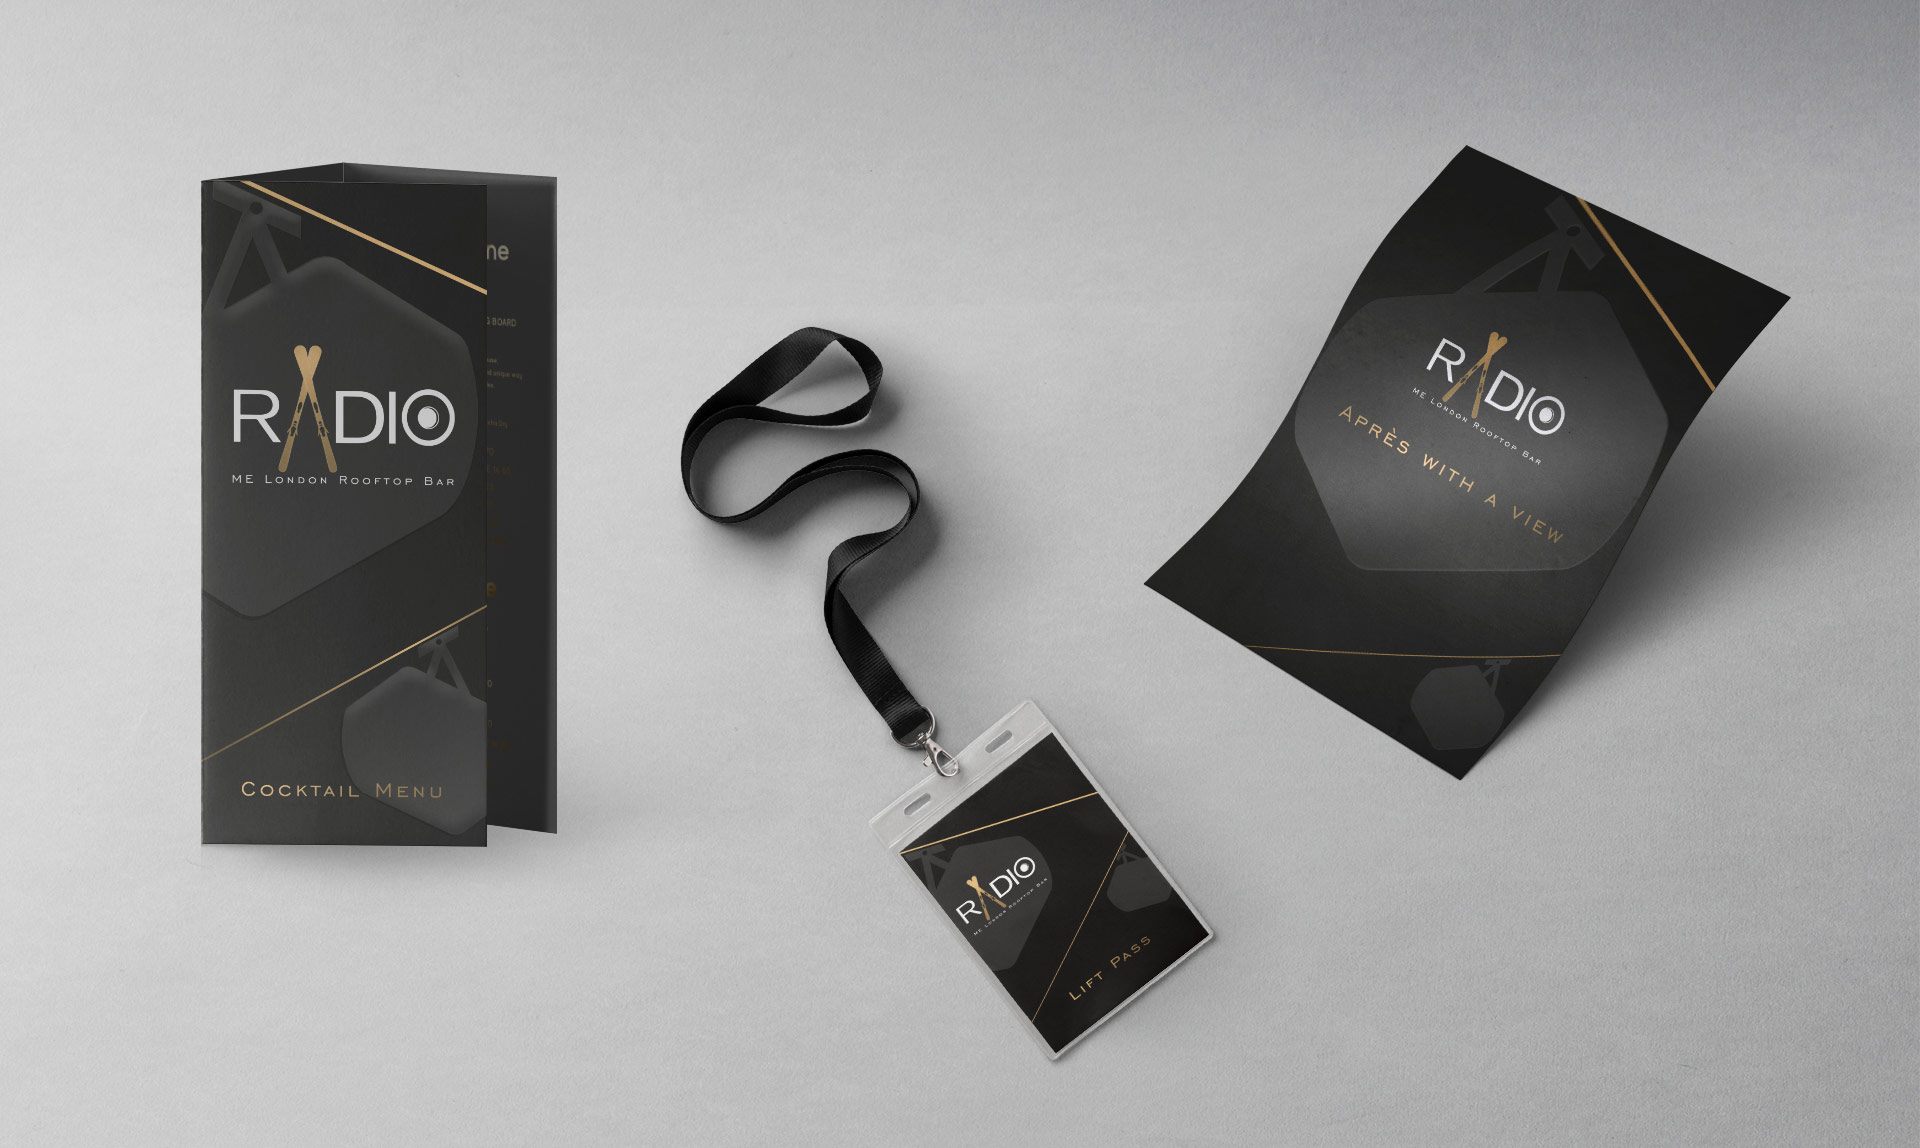 Radio ME London Interior Design Retail branding